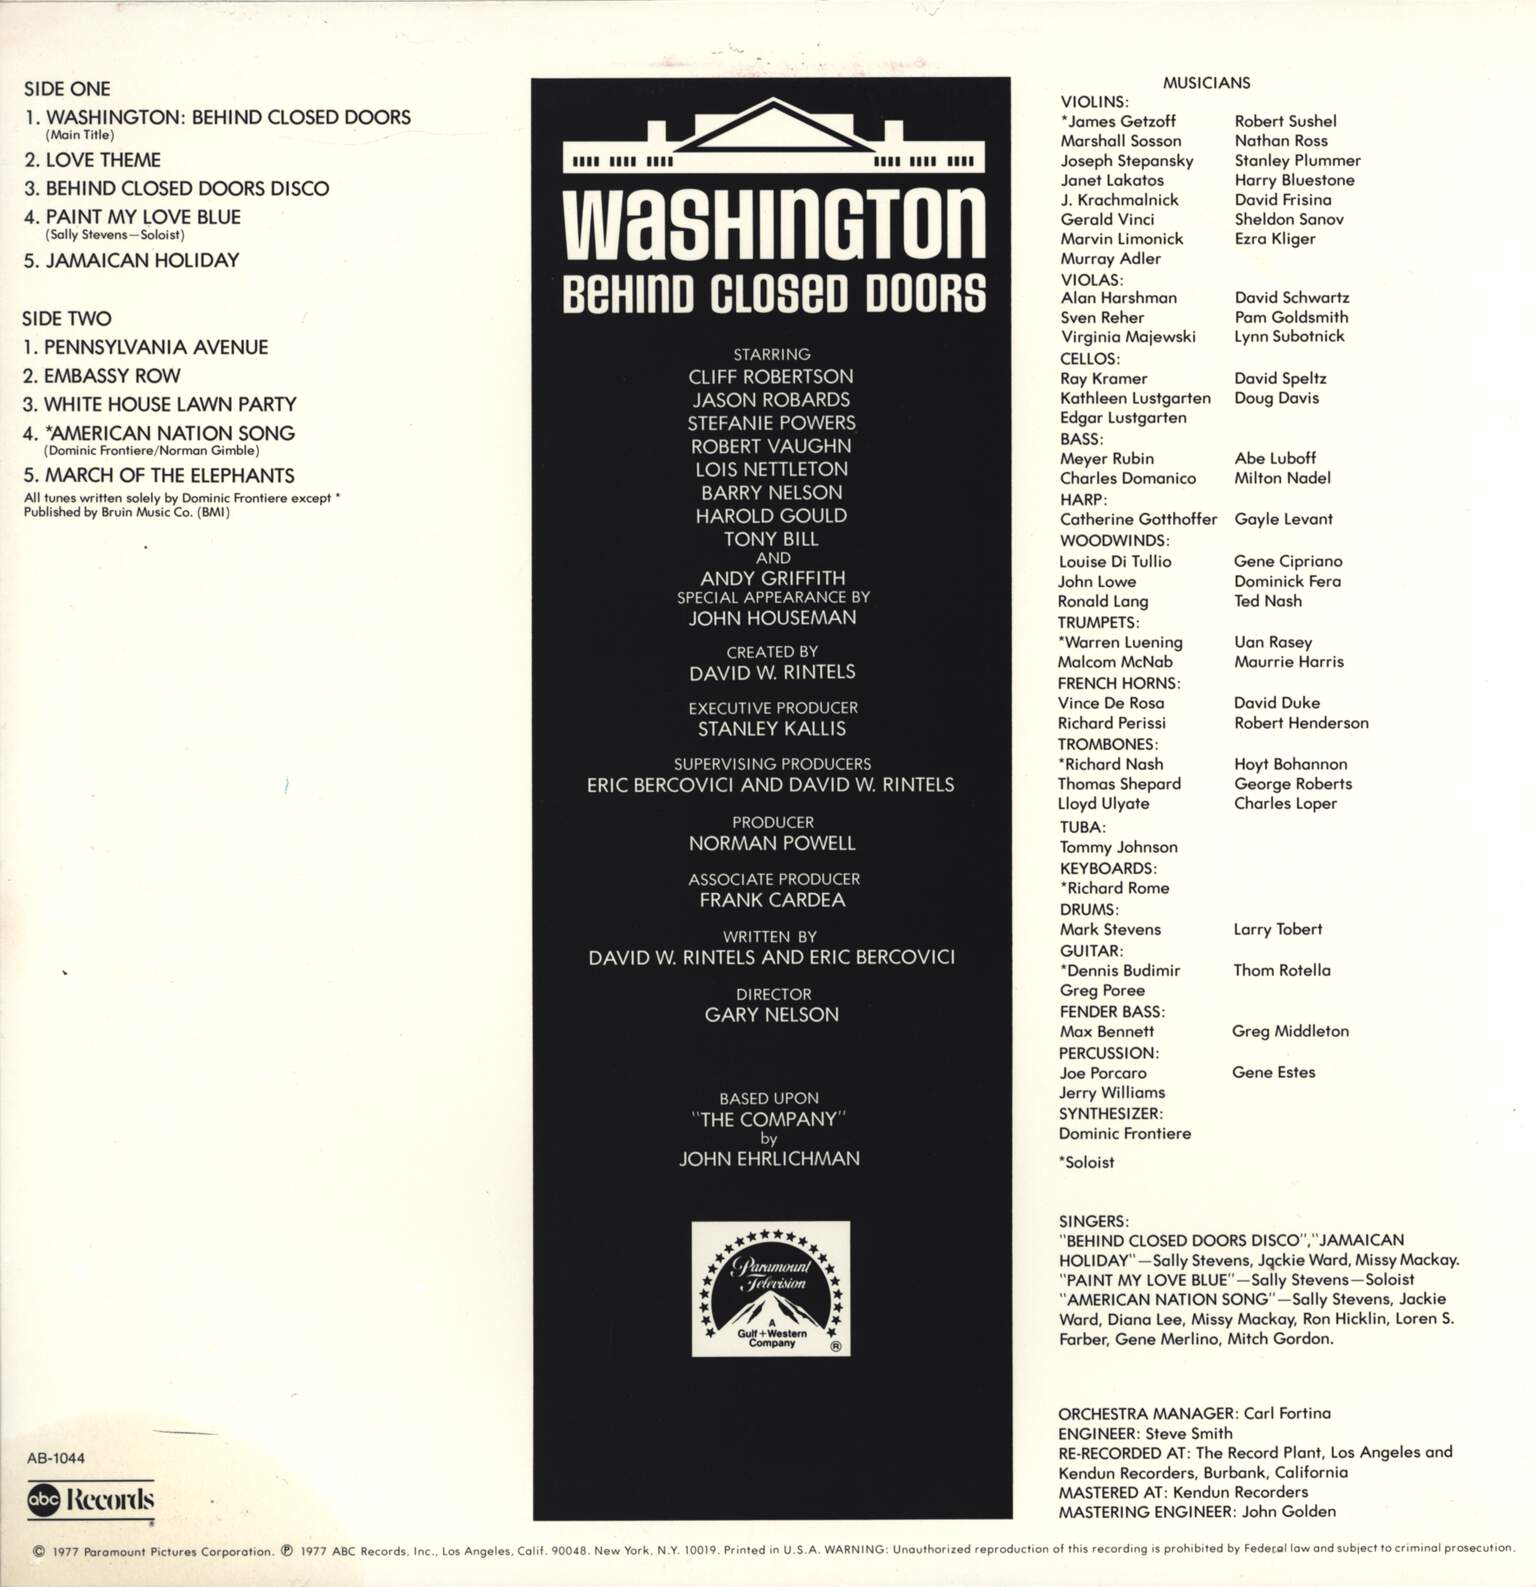 Dominic Frontiere: Washington: Behind Closed Doors (Original Music From), LP (Vinyl)